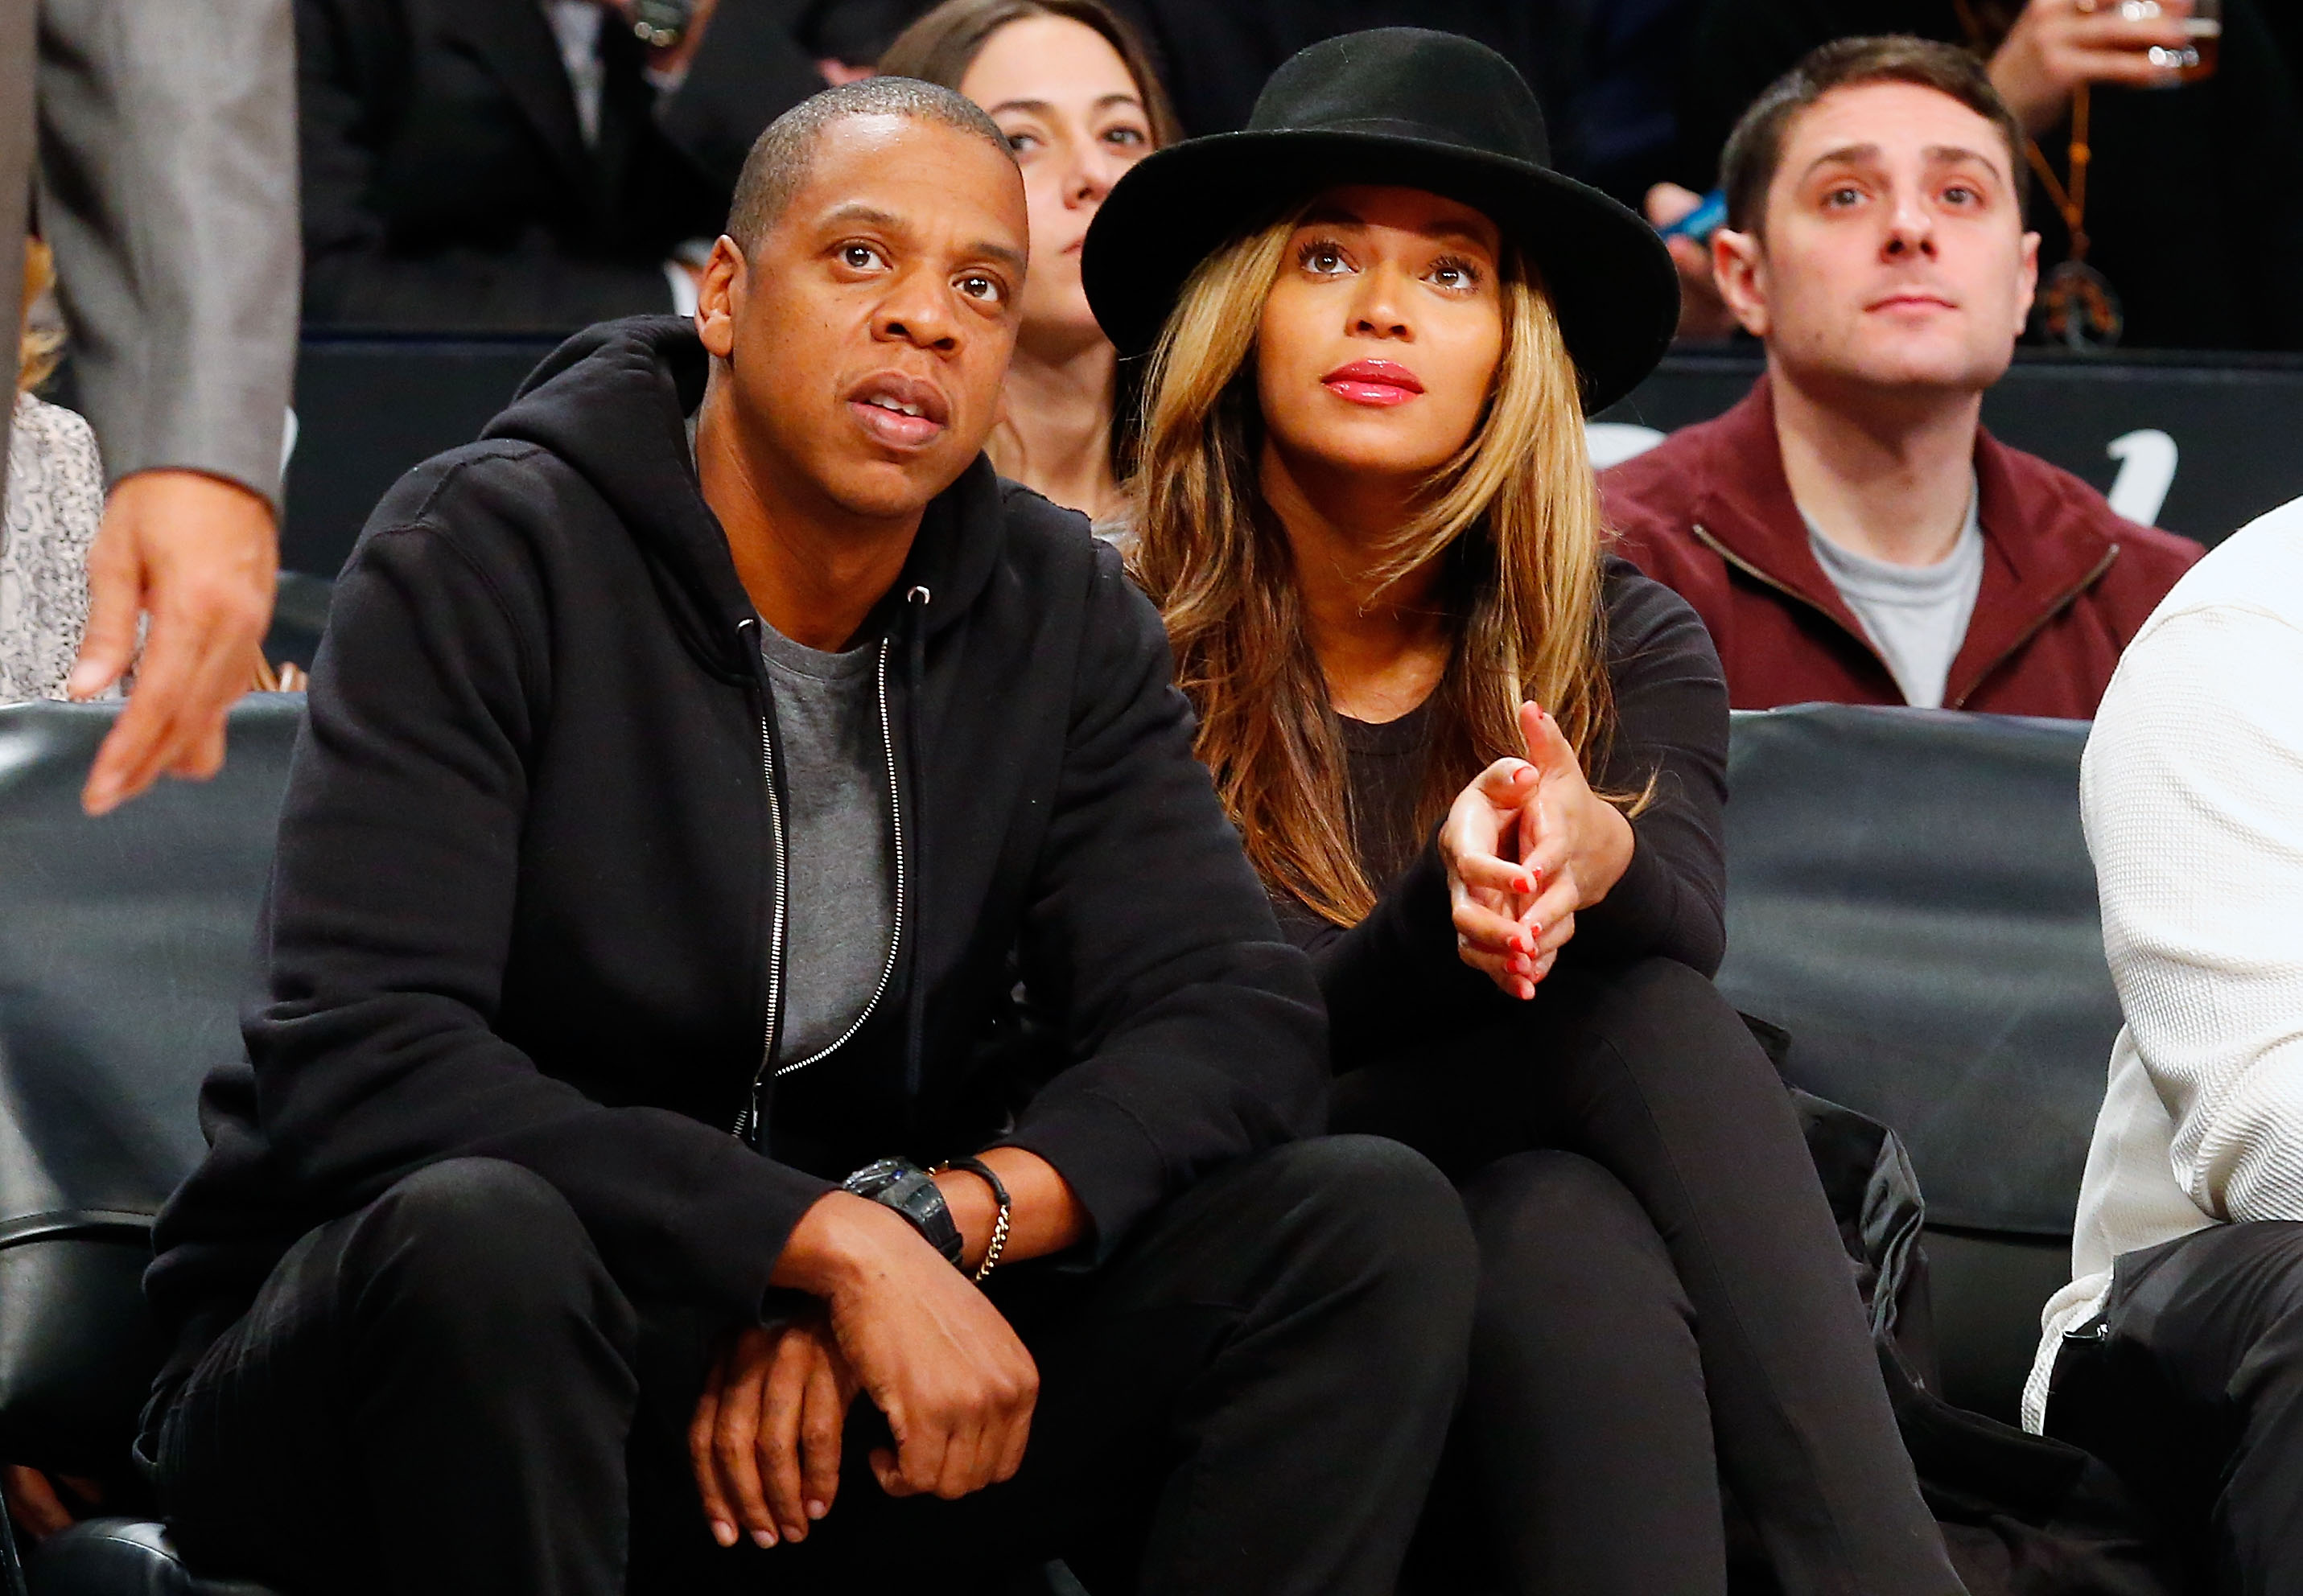 Jay-Z and Beyonce attend a game between the Brooklyn Nets and the Houston Rockets at Barclays Center on January 12, 2015 (Photo by Jim McIsaac/Getty Images)